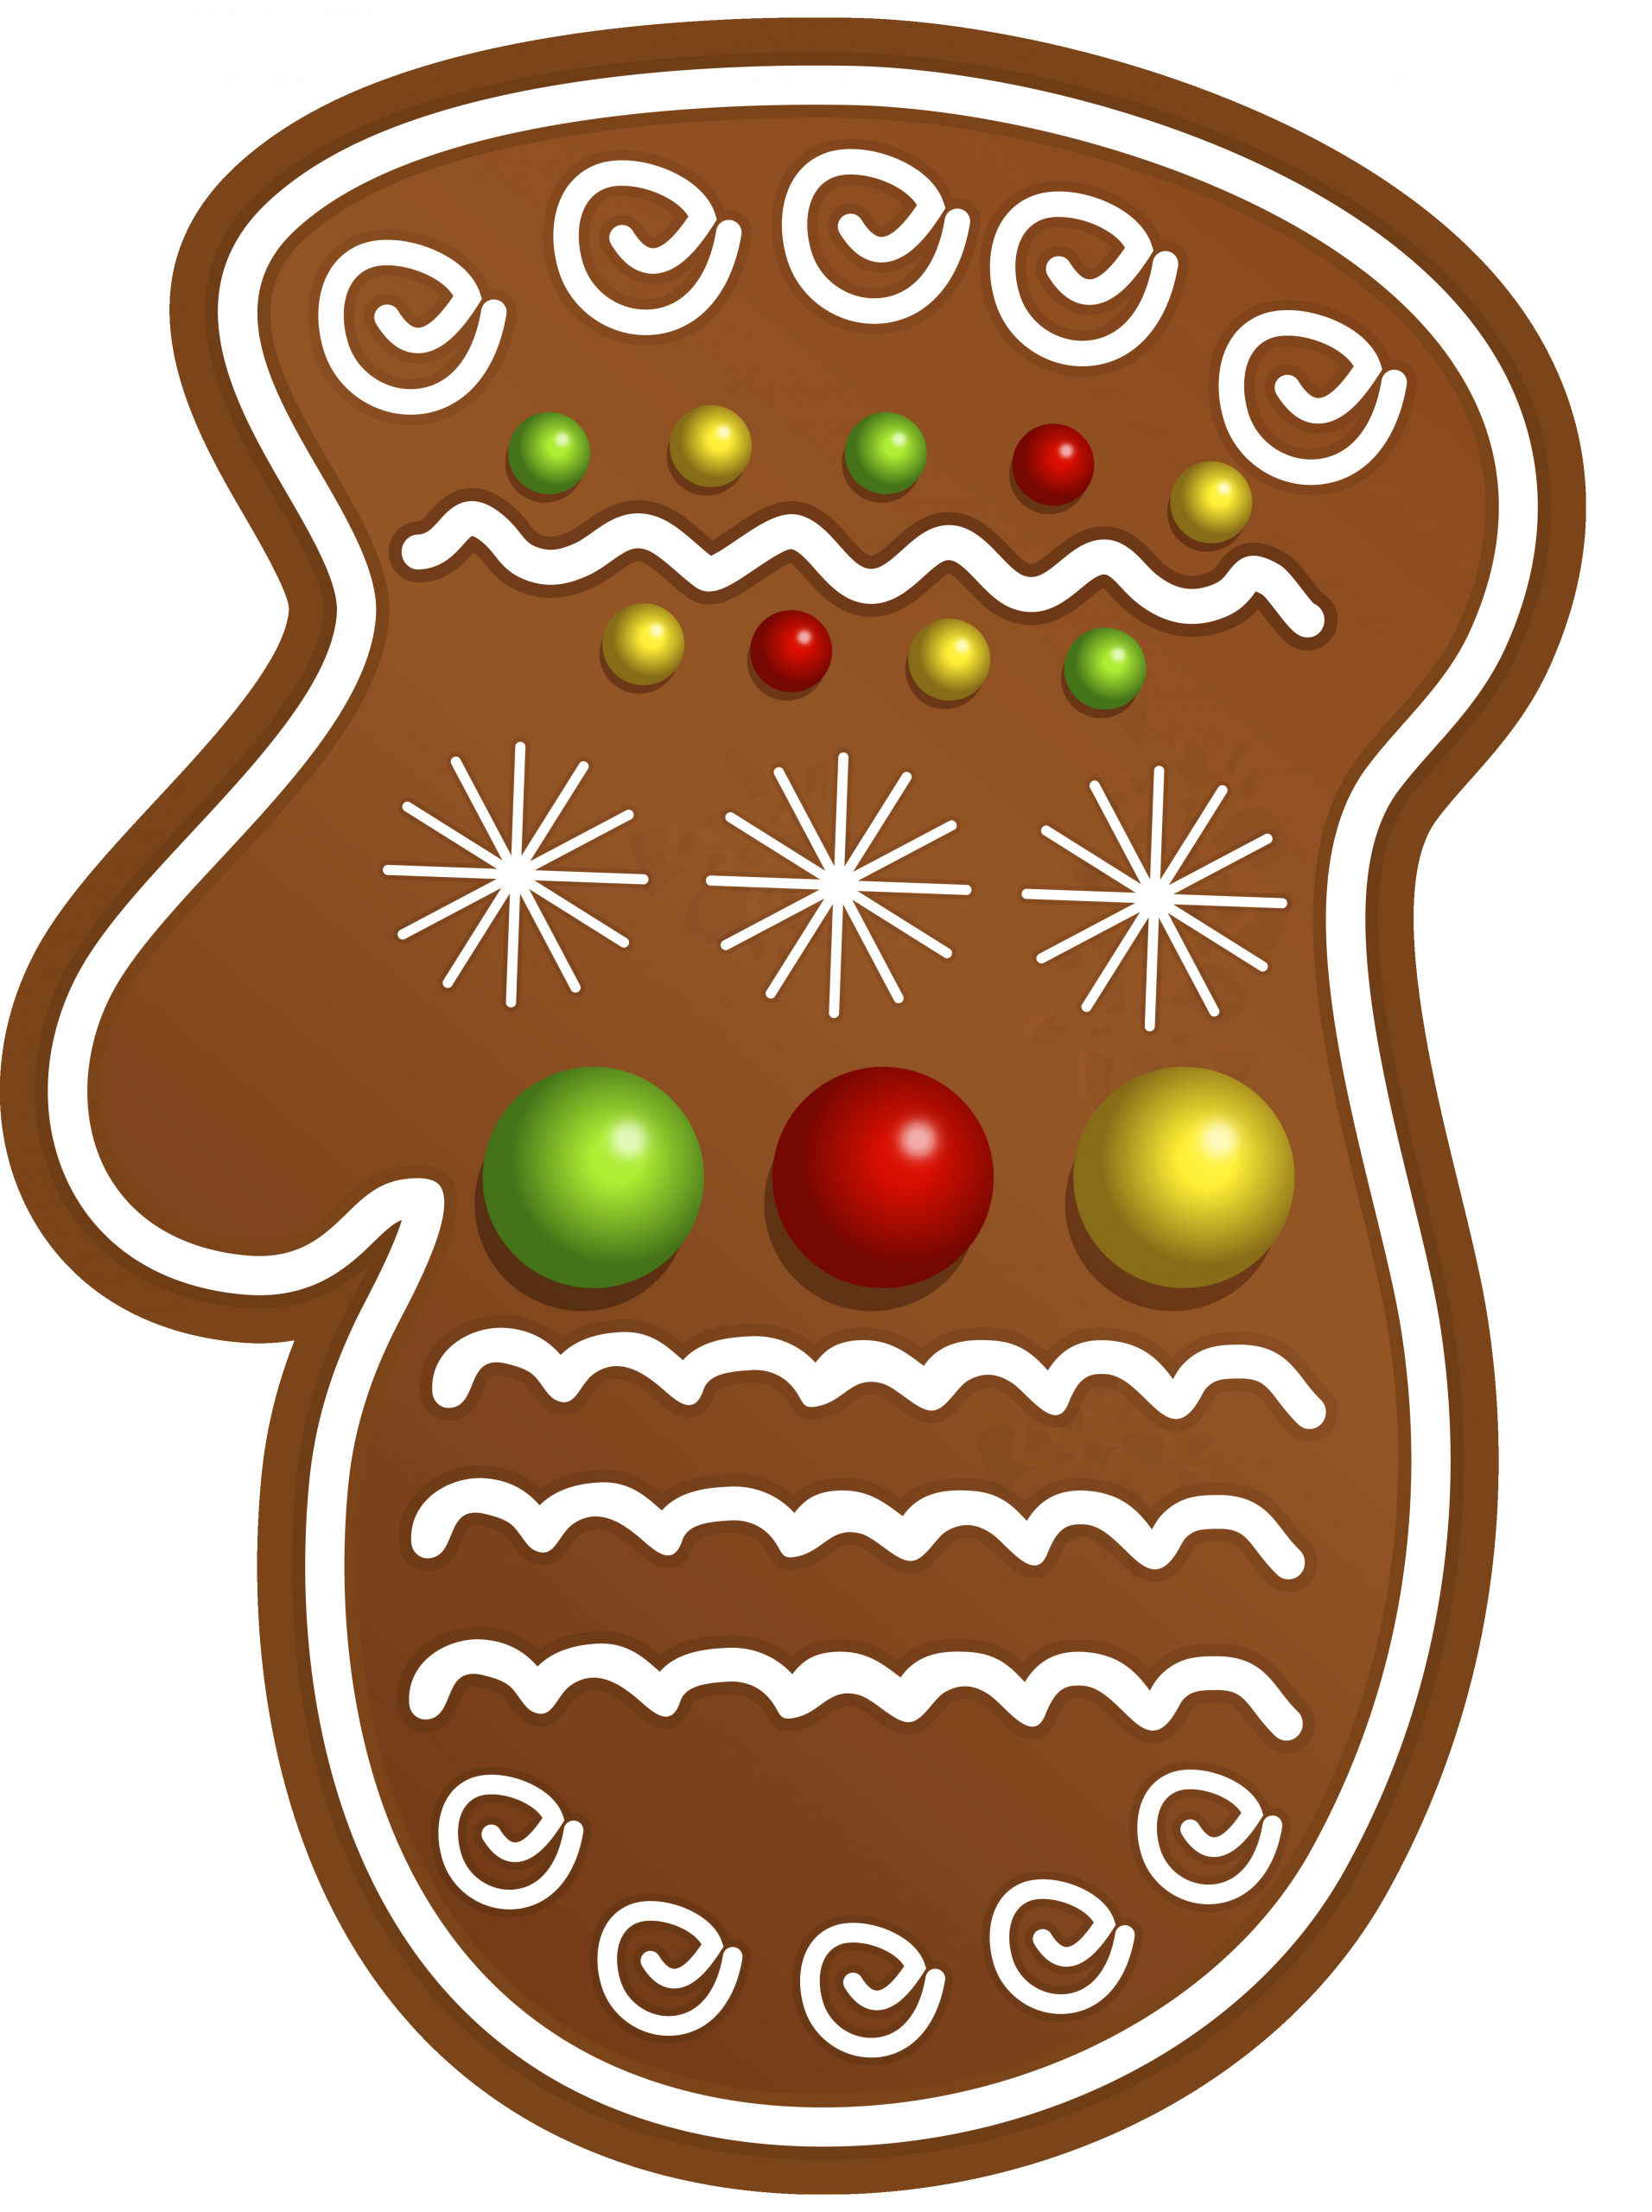 Christmas Cookies Clipart  Christmas Cookie Glove PNG Clipart Image